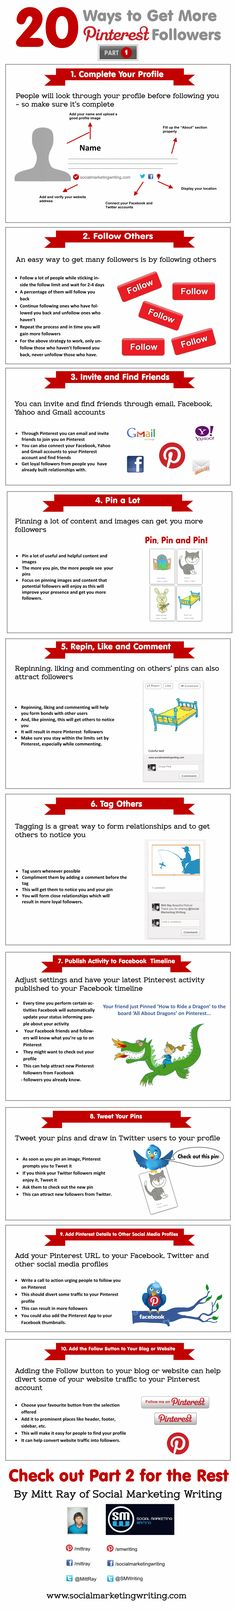 20 Ways to Get More #Pinterest Followers (Part I)